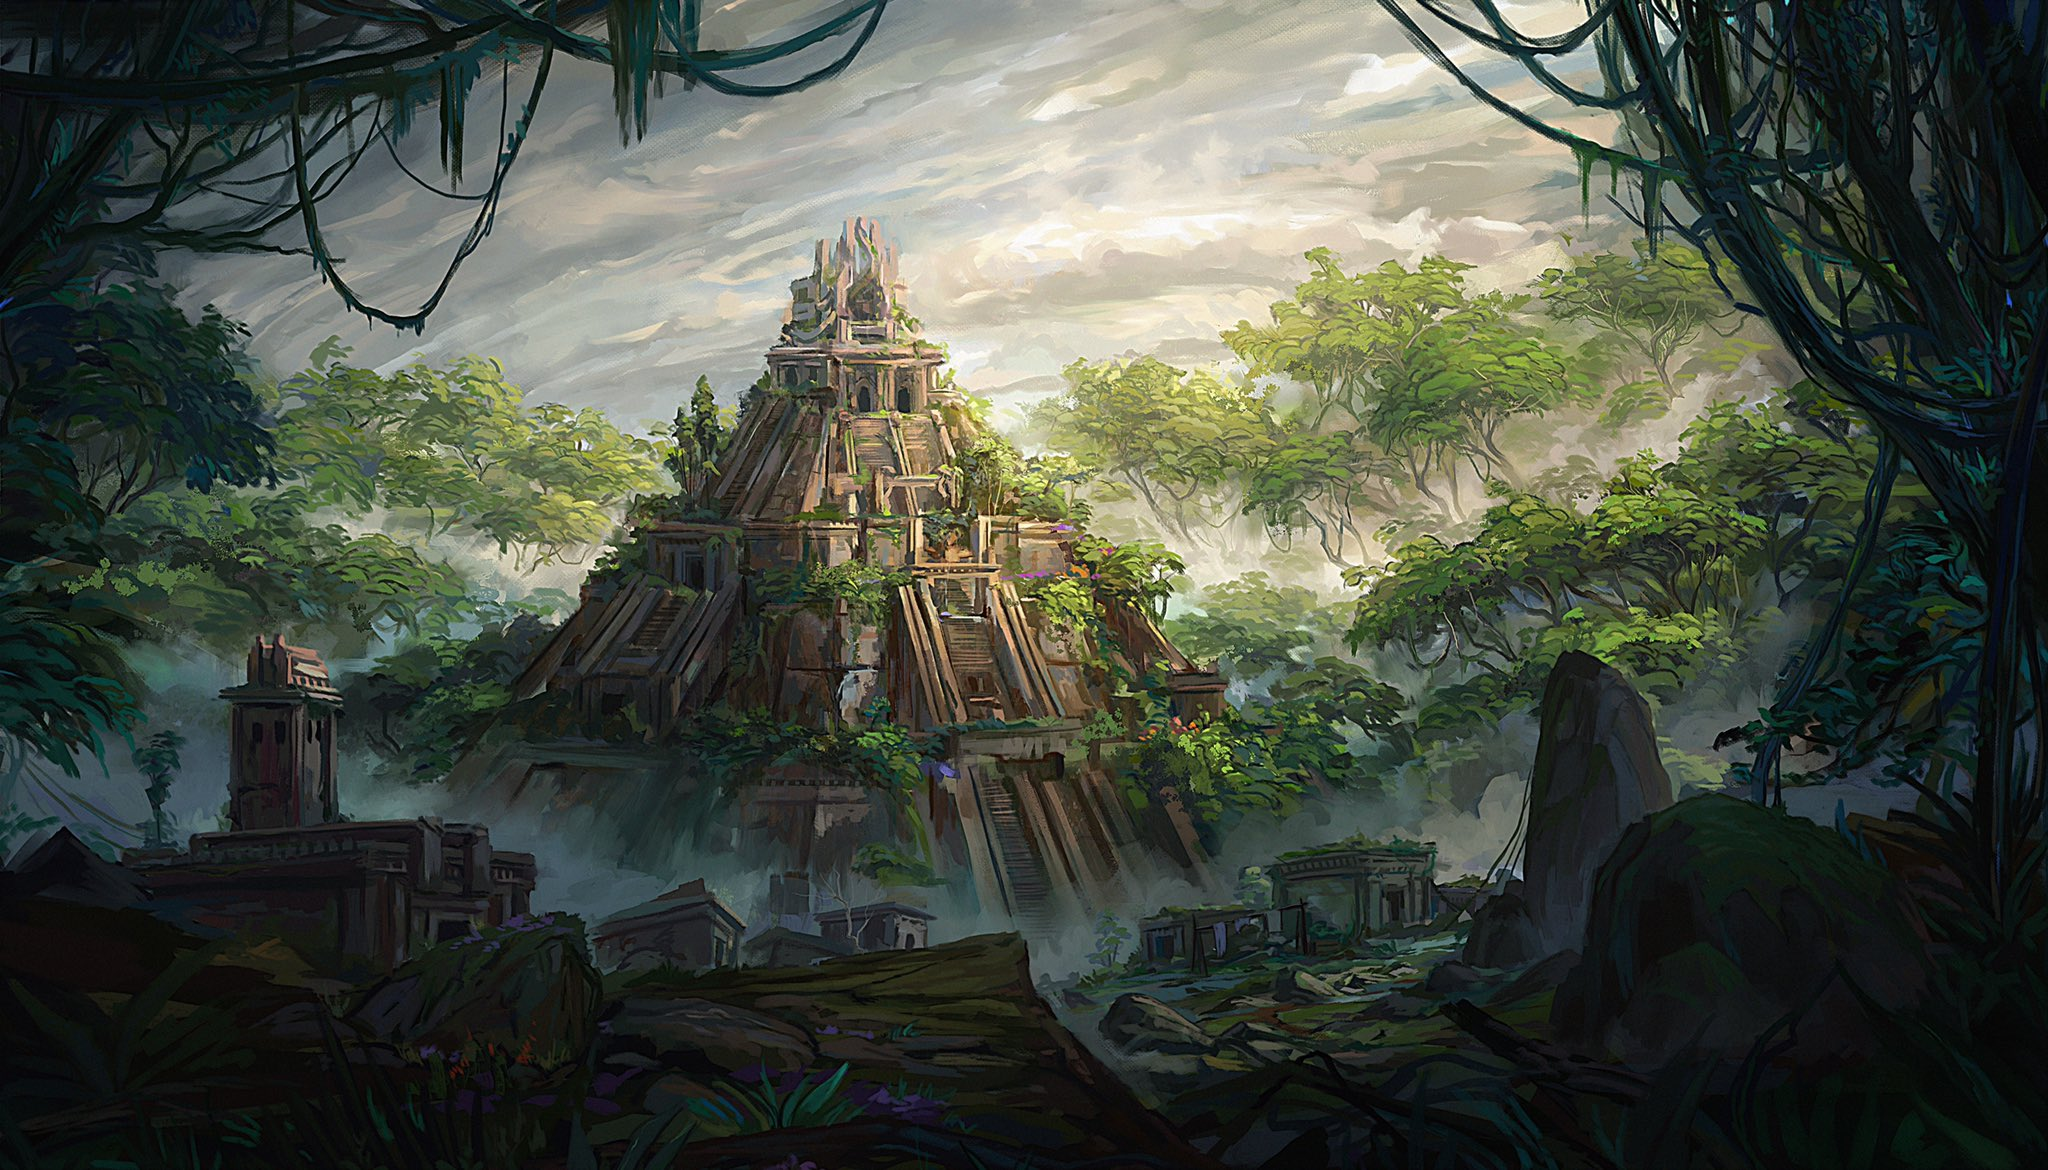 Temple of the False Serpent (temple)